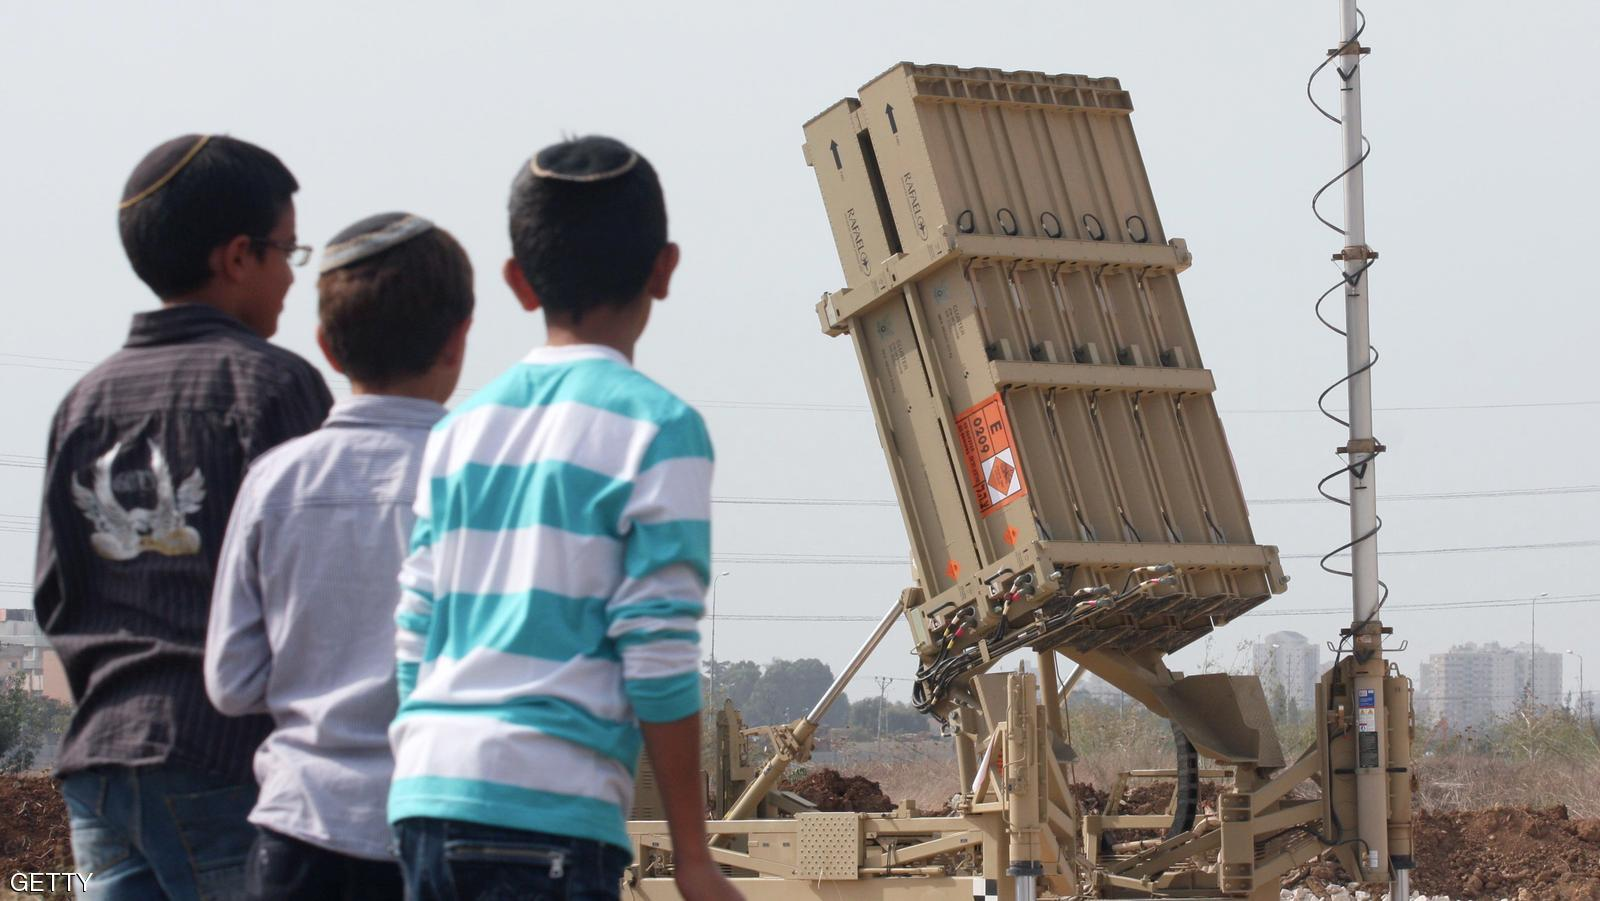 ---ISRAEL OUT--- Israeli children look at the Israeli military's Iron Dome defence missile system, designed to intercept and destroy incoming short-range rockets and artillery shells, deployed in Gush Dan, the Tel Aviv metropolitan area, on November 17, 2012. Since the start of the Israeli's ongoing military operation, Israel's army says Palestinian militants have fired more than 580 rockets over the border, 367 of which hit southern Israel, and 222 of which were intercepted by the Iron Dome anti-missile system. Hamas's military wing said it fired a rocket at Jerusalem, and witnesses said another crashed into the sea off Tel Aviv on November 16. AFP PHOTO/RONI SCHUTZER        (Photo credit should read RONI SCHUTZER/AFP/Getty Images)